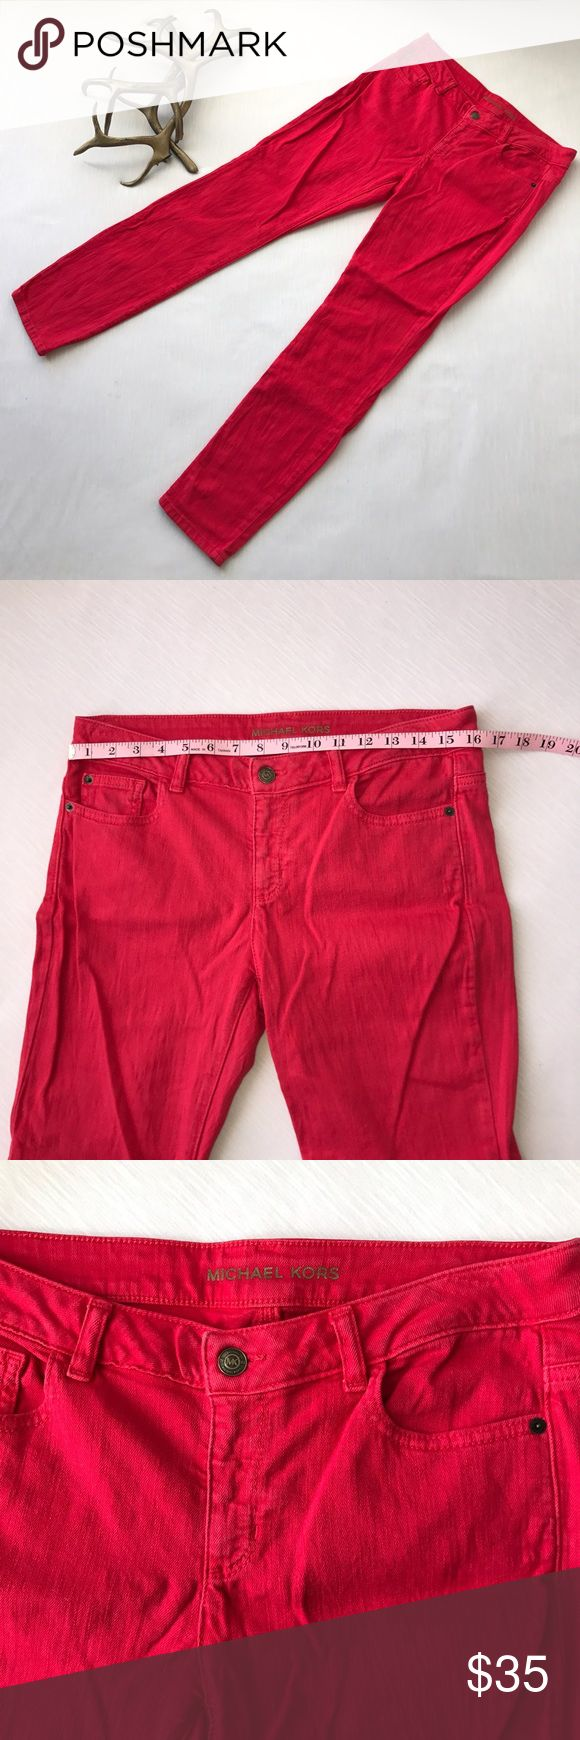 Michael Kors Size 6 AS IS Michael Kors size 6, in great used condition, only thing is a bit faded around pockets and waist area. Bright red, skinny leg, comfy. Michael Kors Pants Skinny